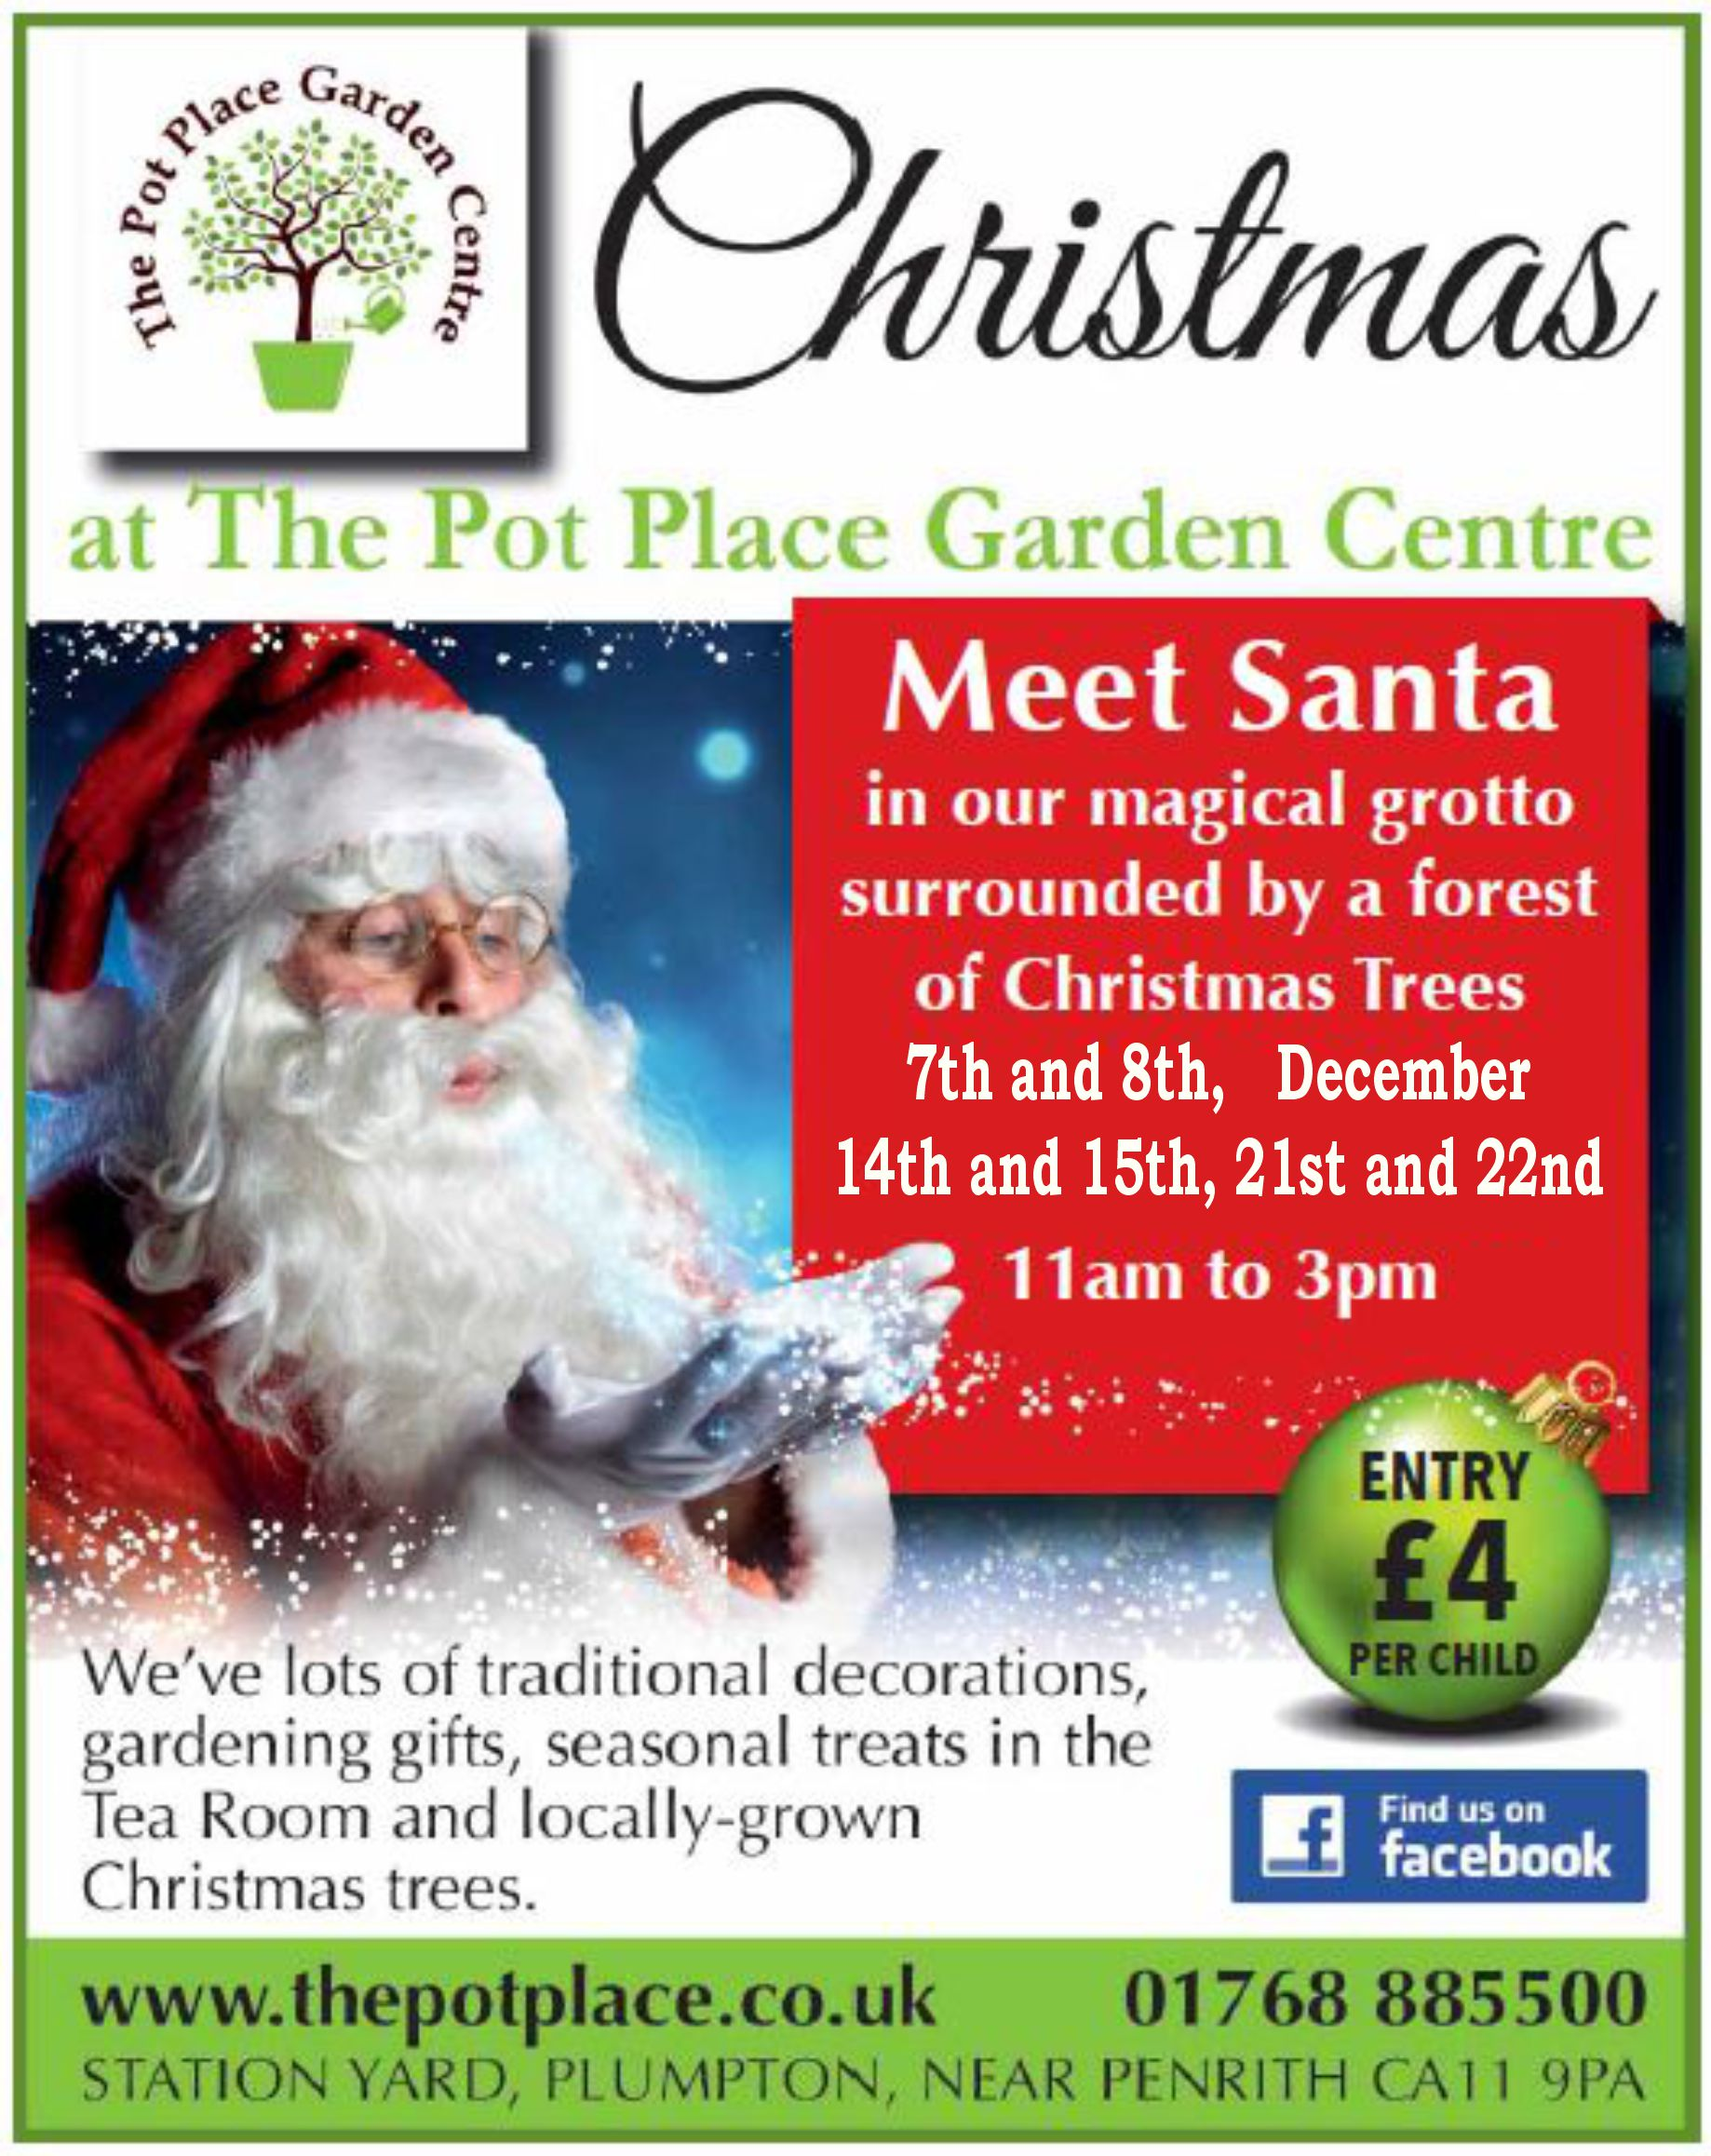 Christmas at The Pot Place